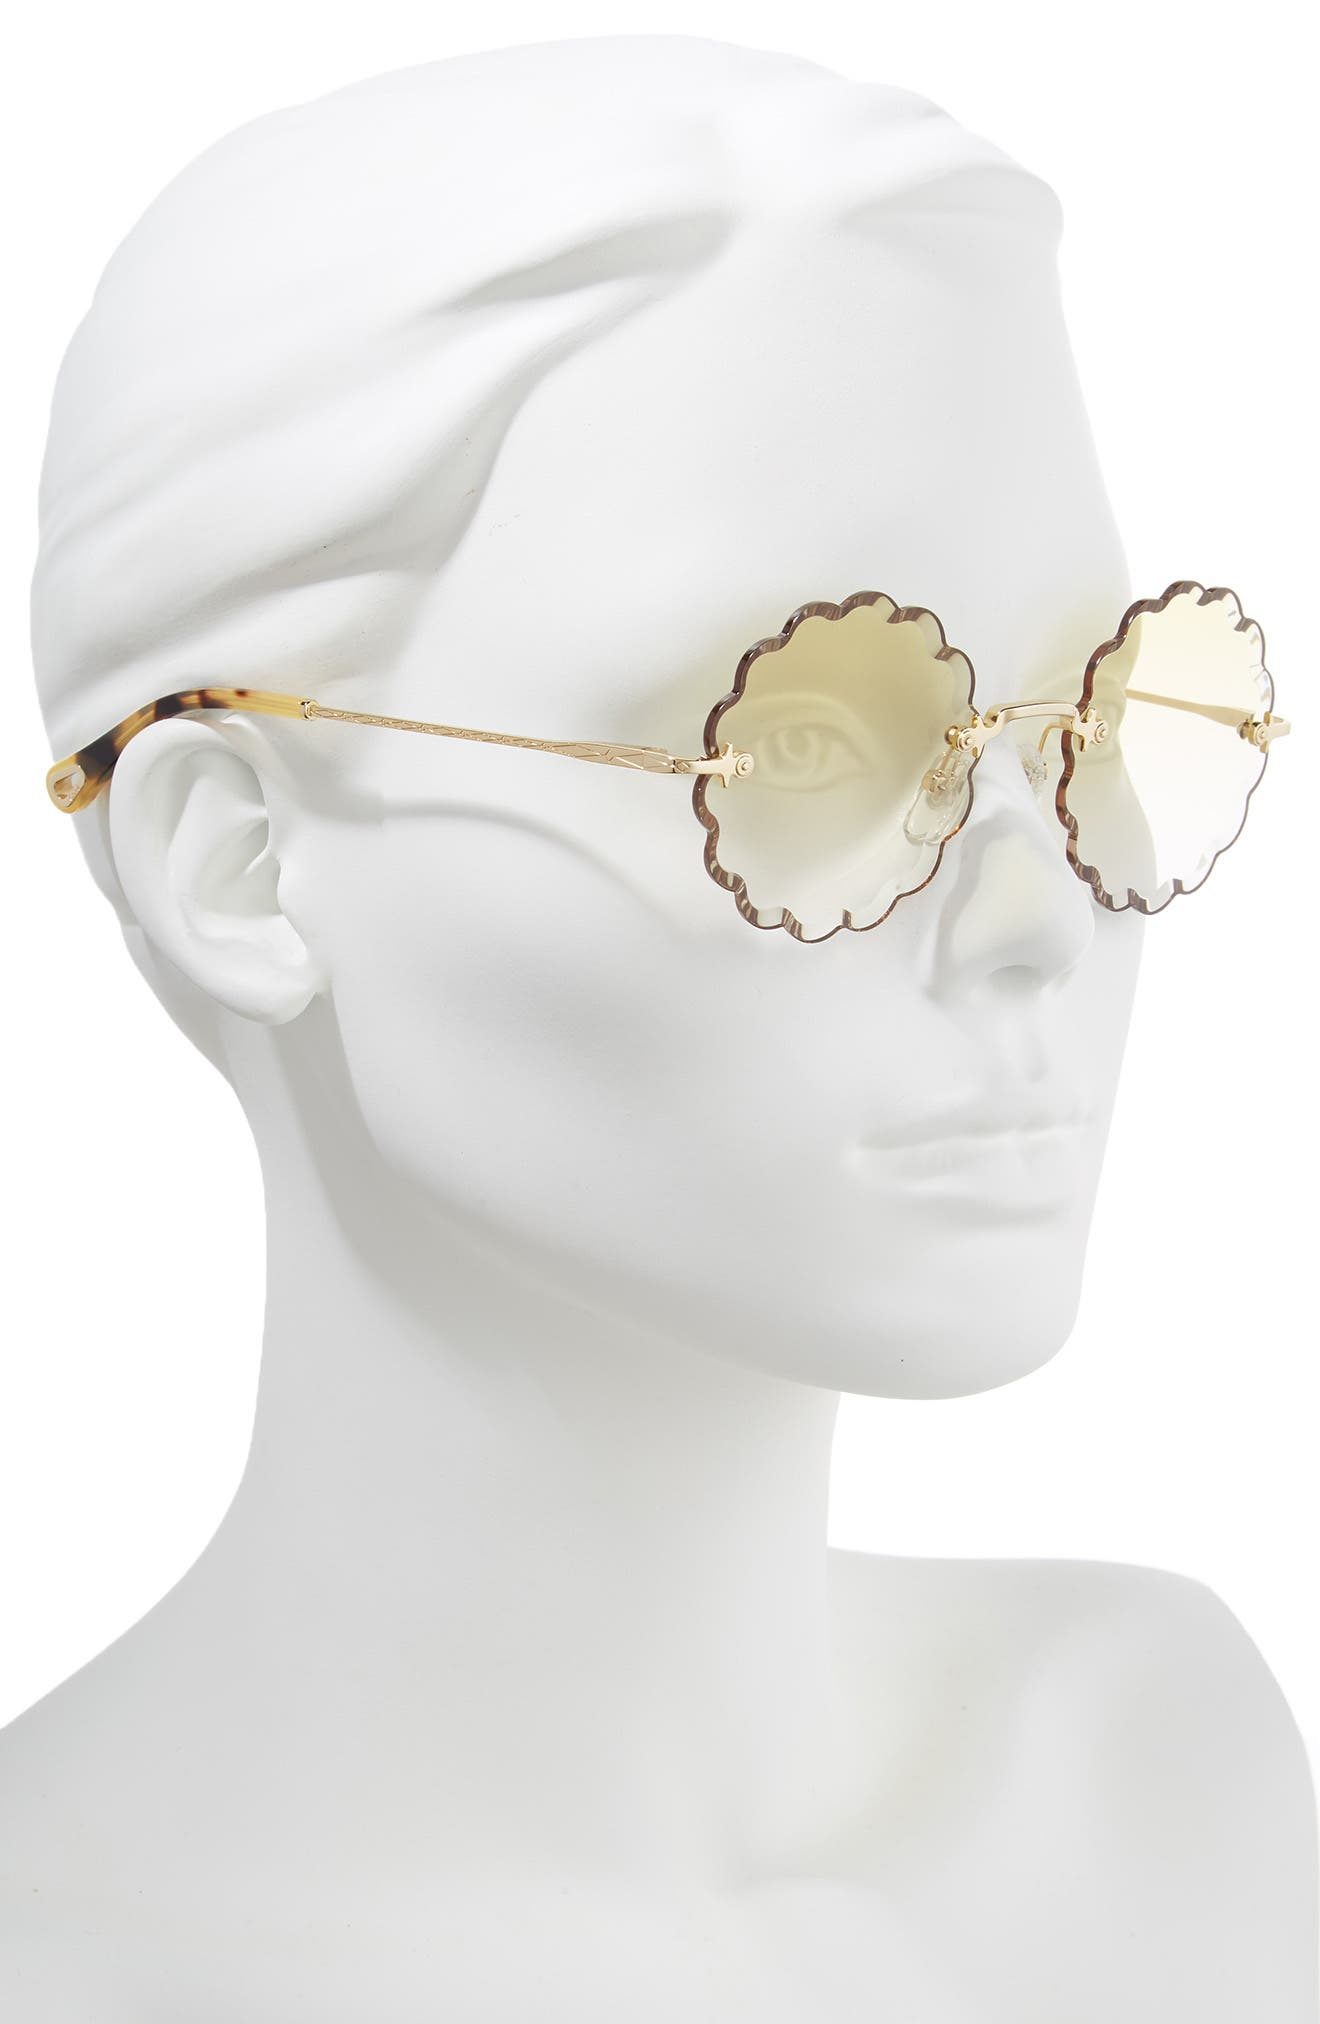 Rosie 53mm Scalloped Sunglasses,                             Alternate thumbnail 2, color,                             GOLD/ GRADIENT YELLOW